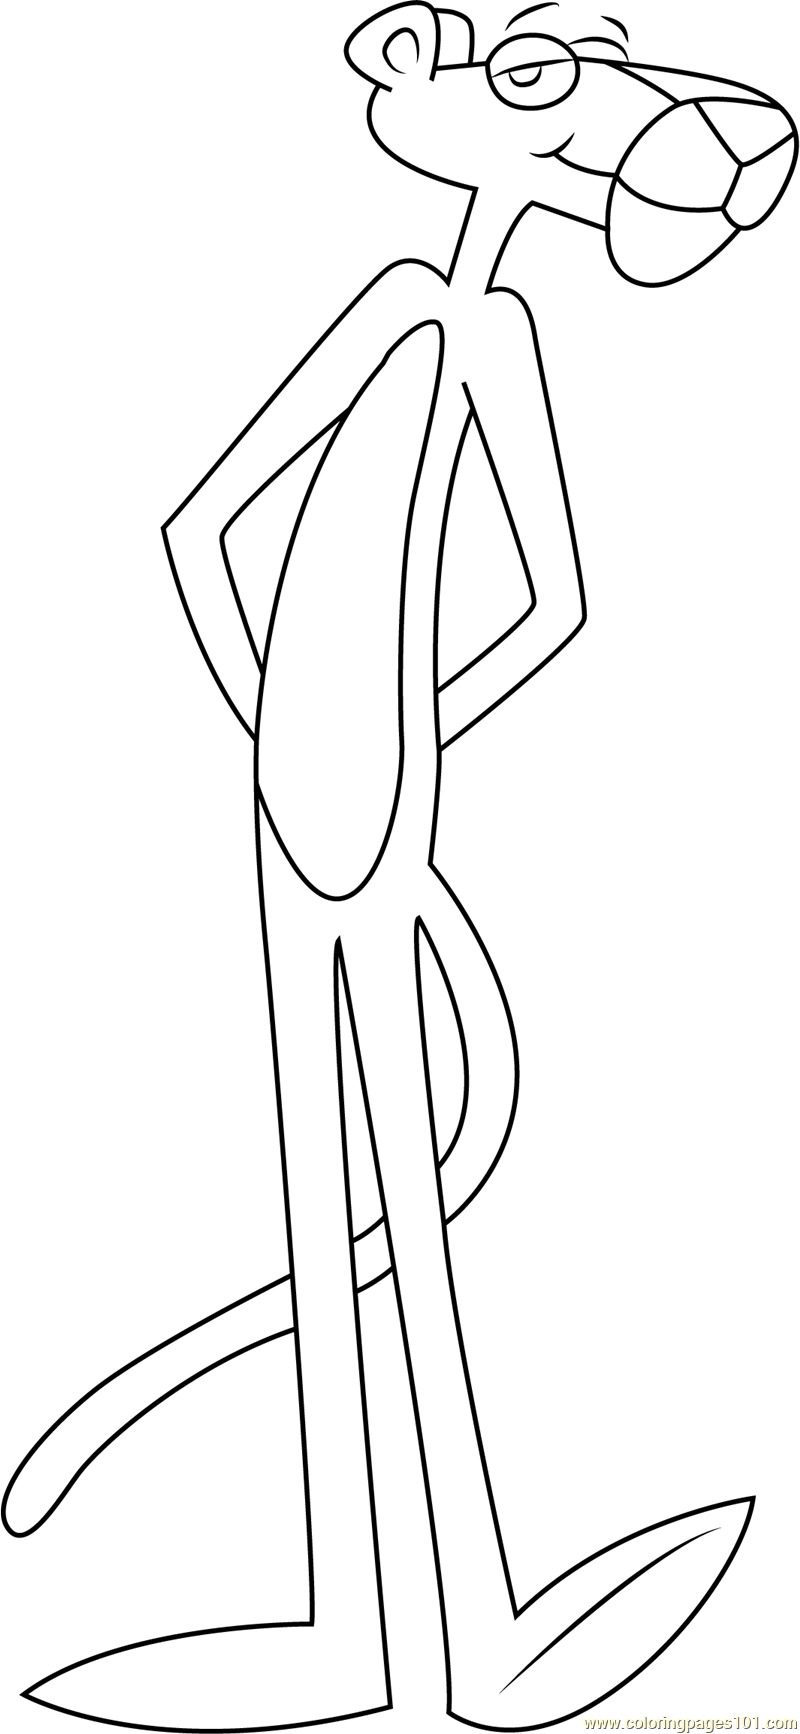 Pink Panther Standing Coloring Page - Free The Pink ...